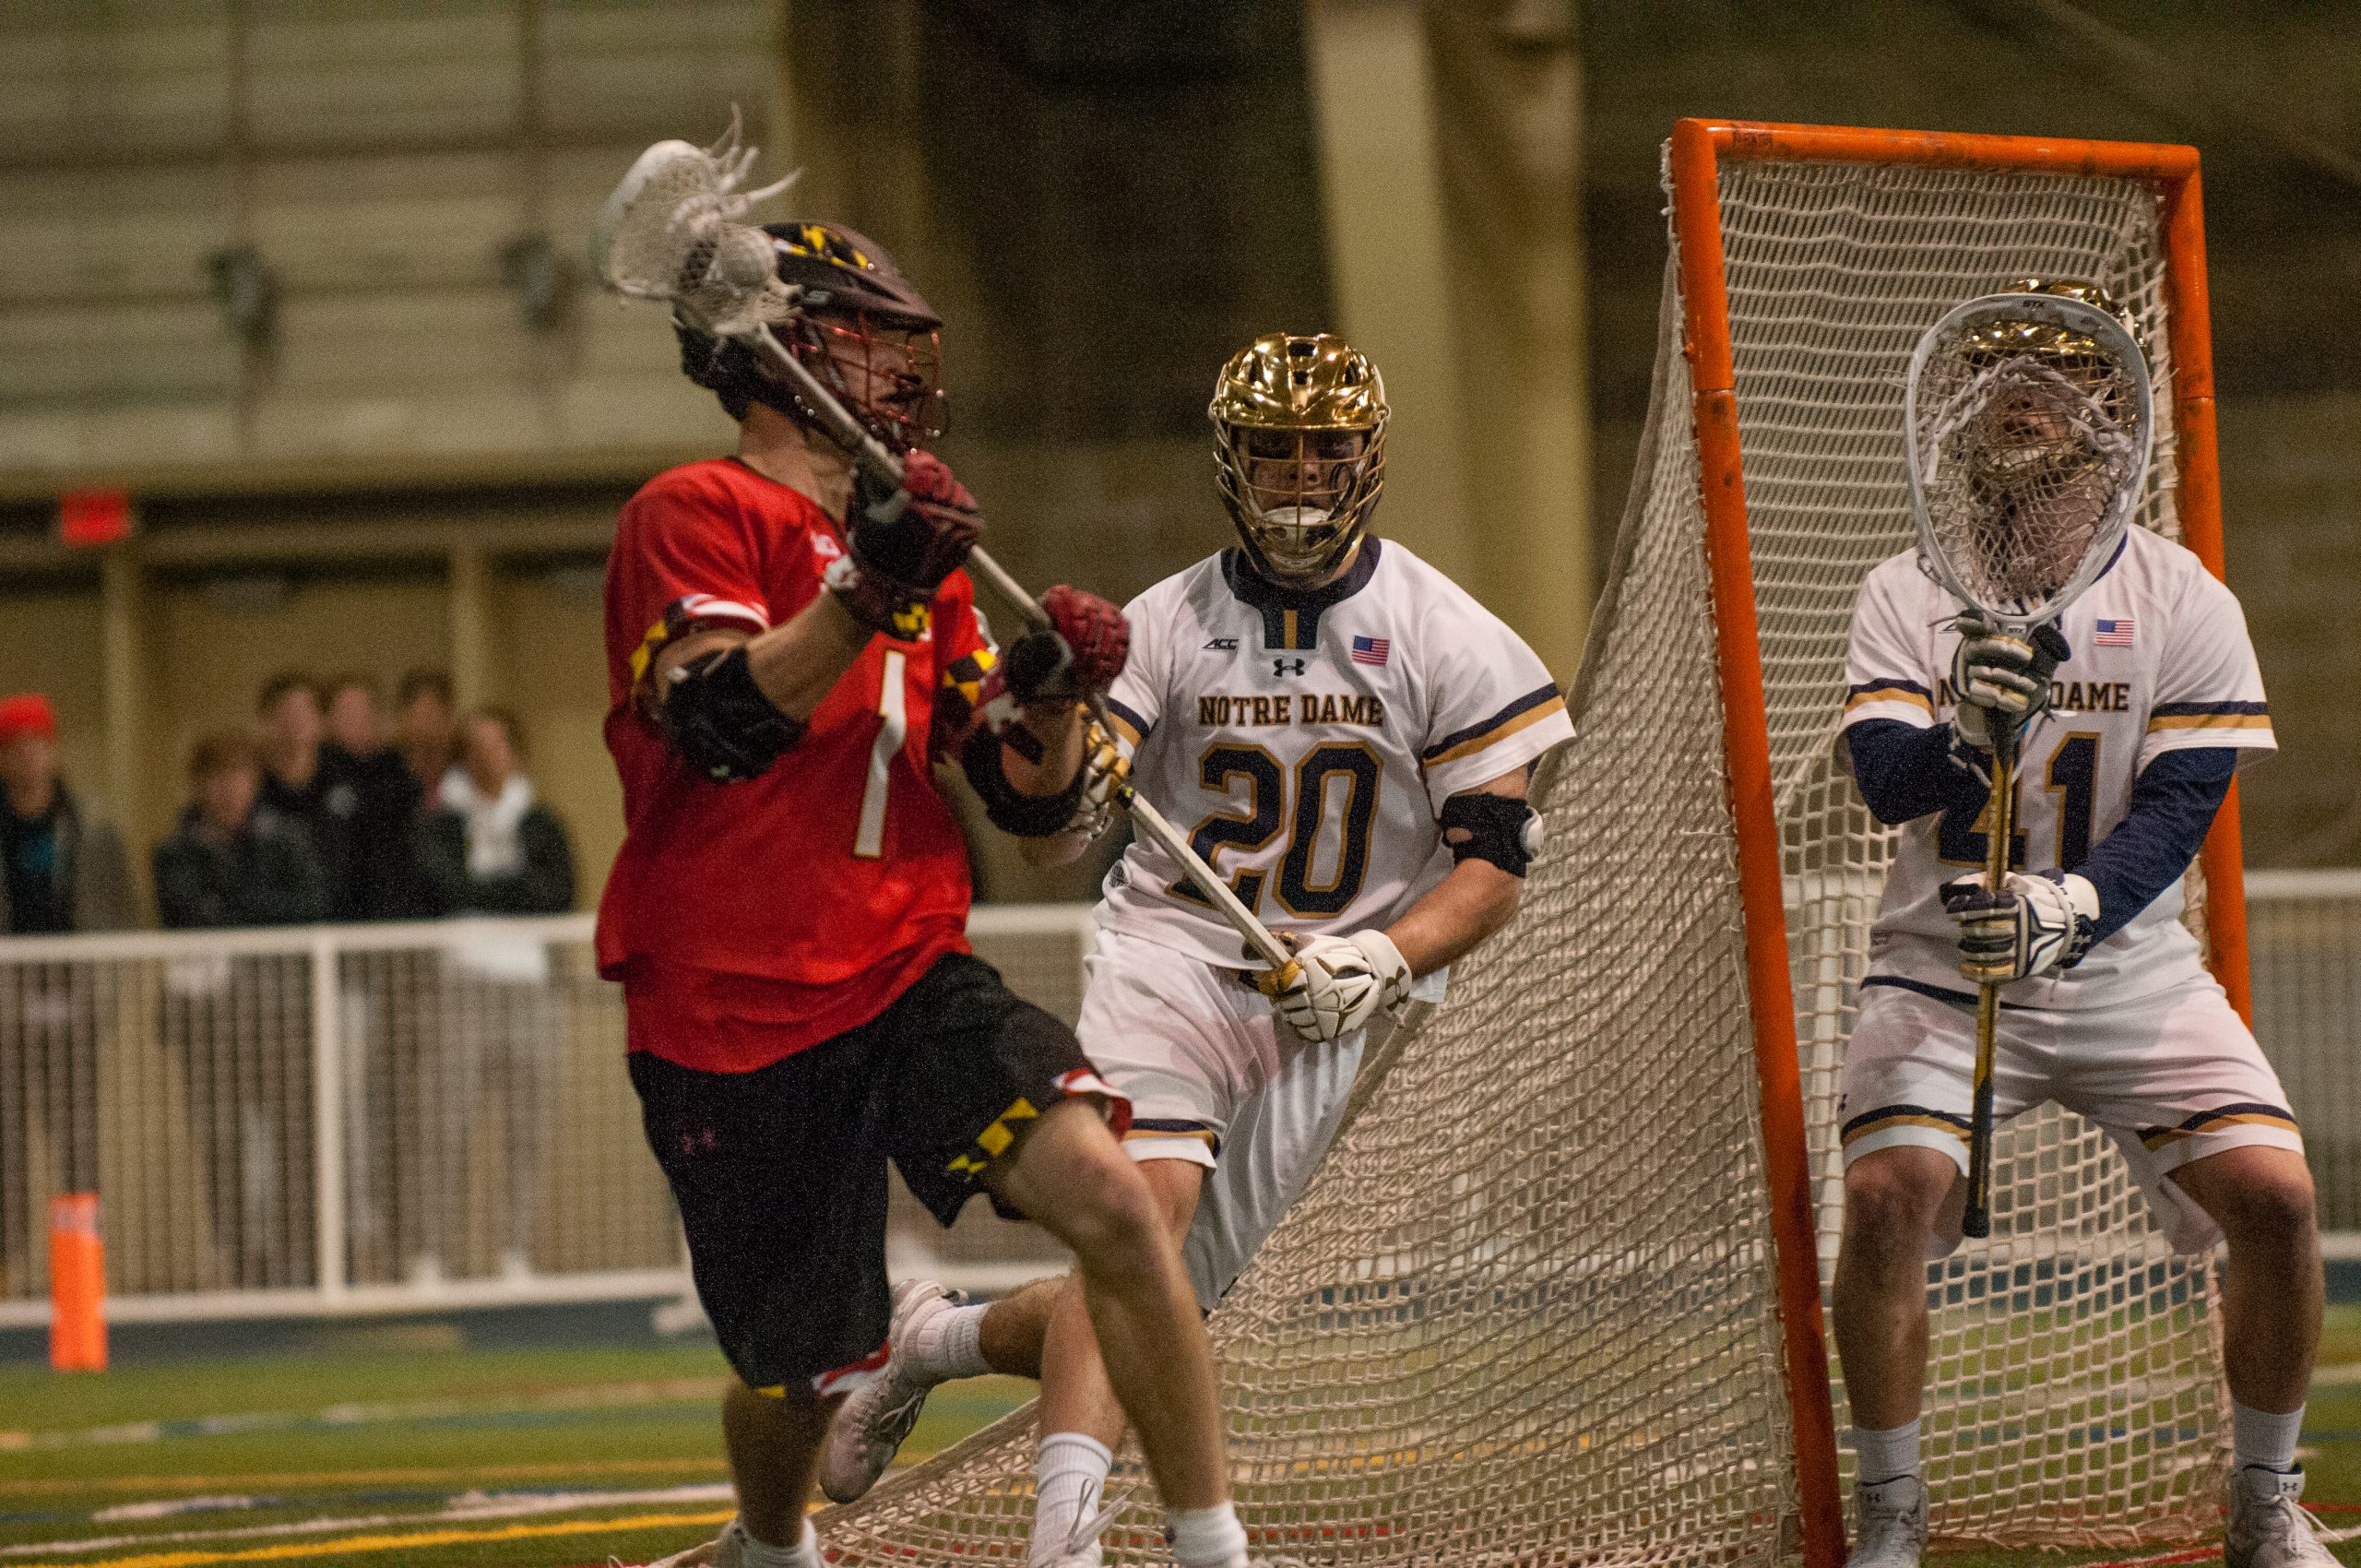 Florida's Jared Bernhardt Maryland Lacrosse